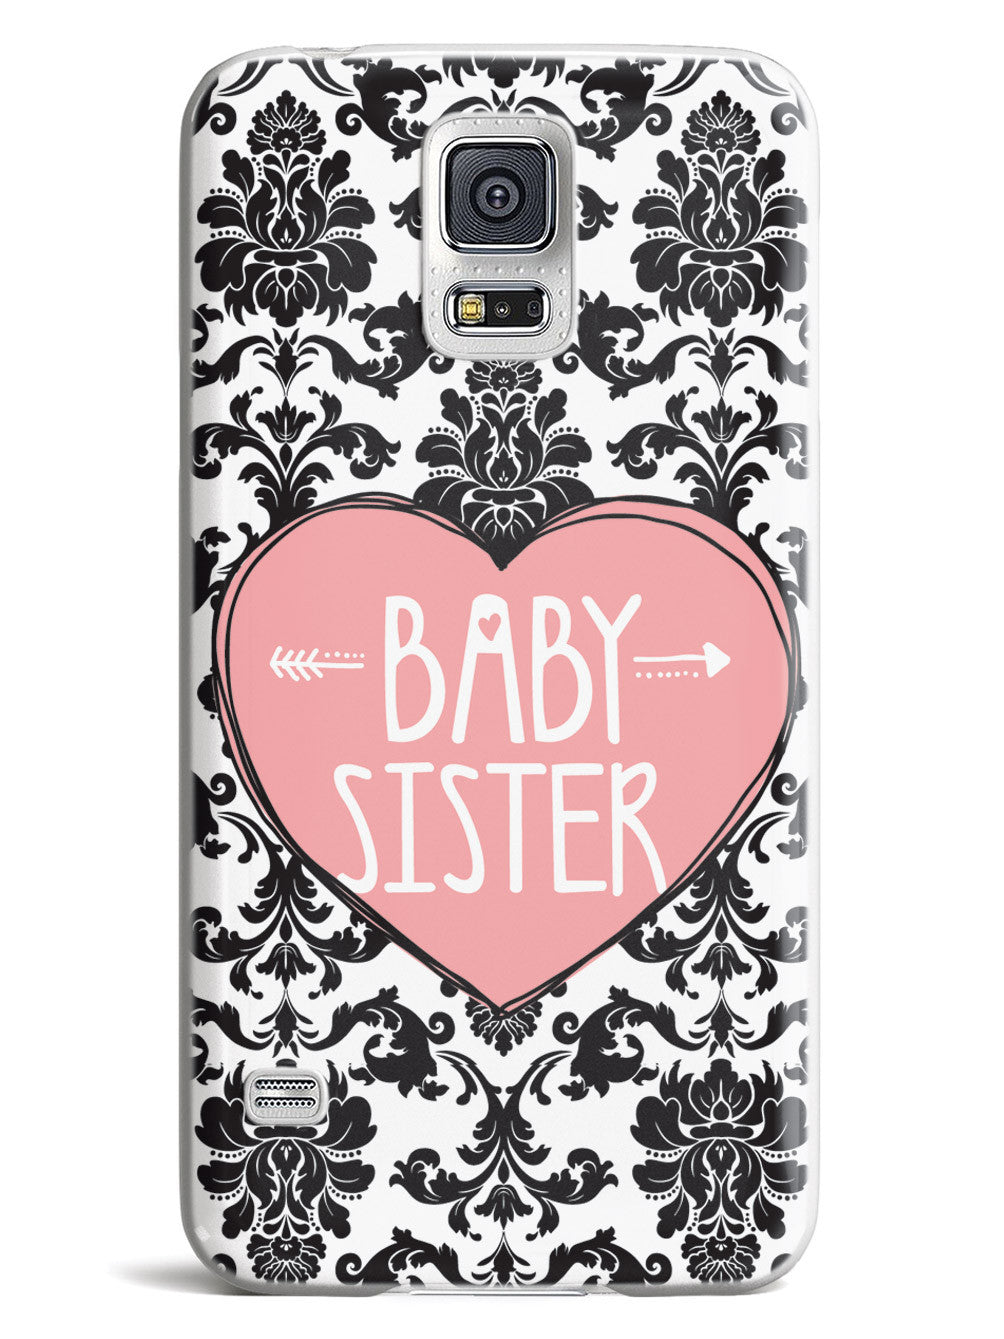 Sisterly Love - Baby Sister - Damask Case